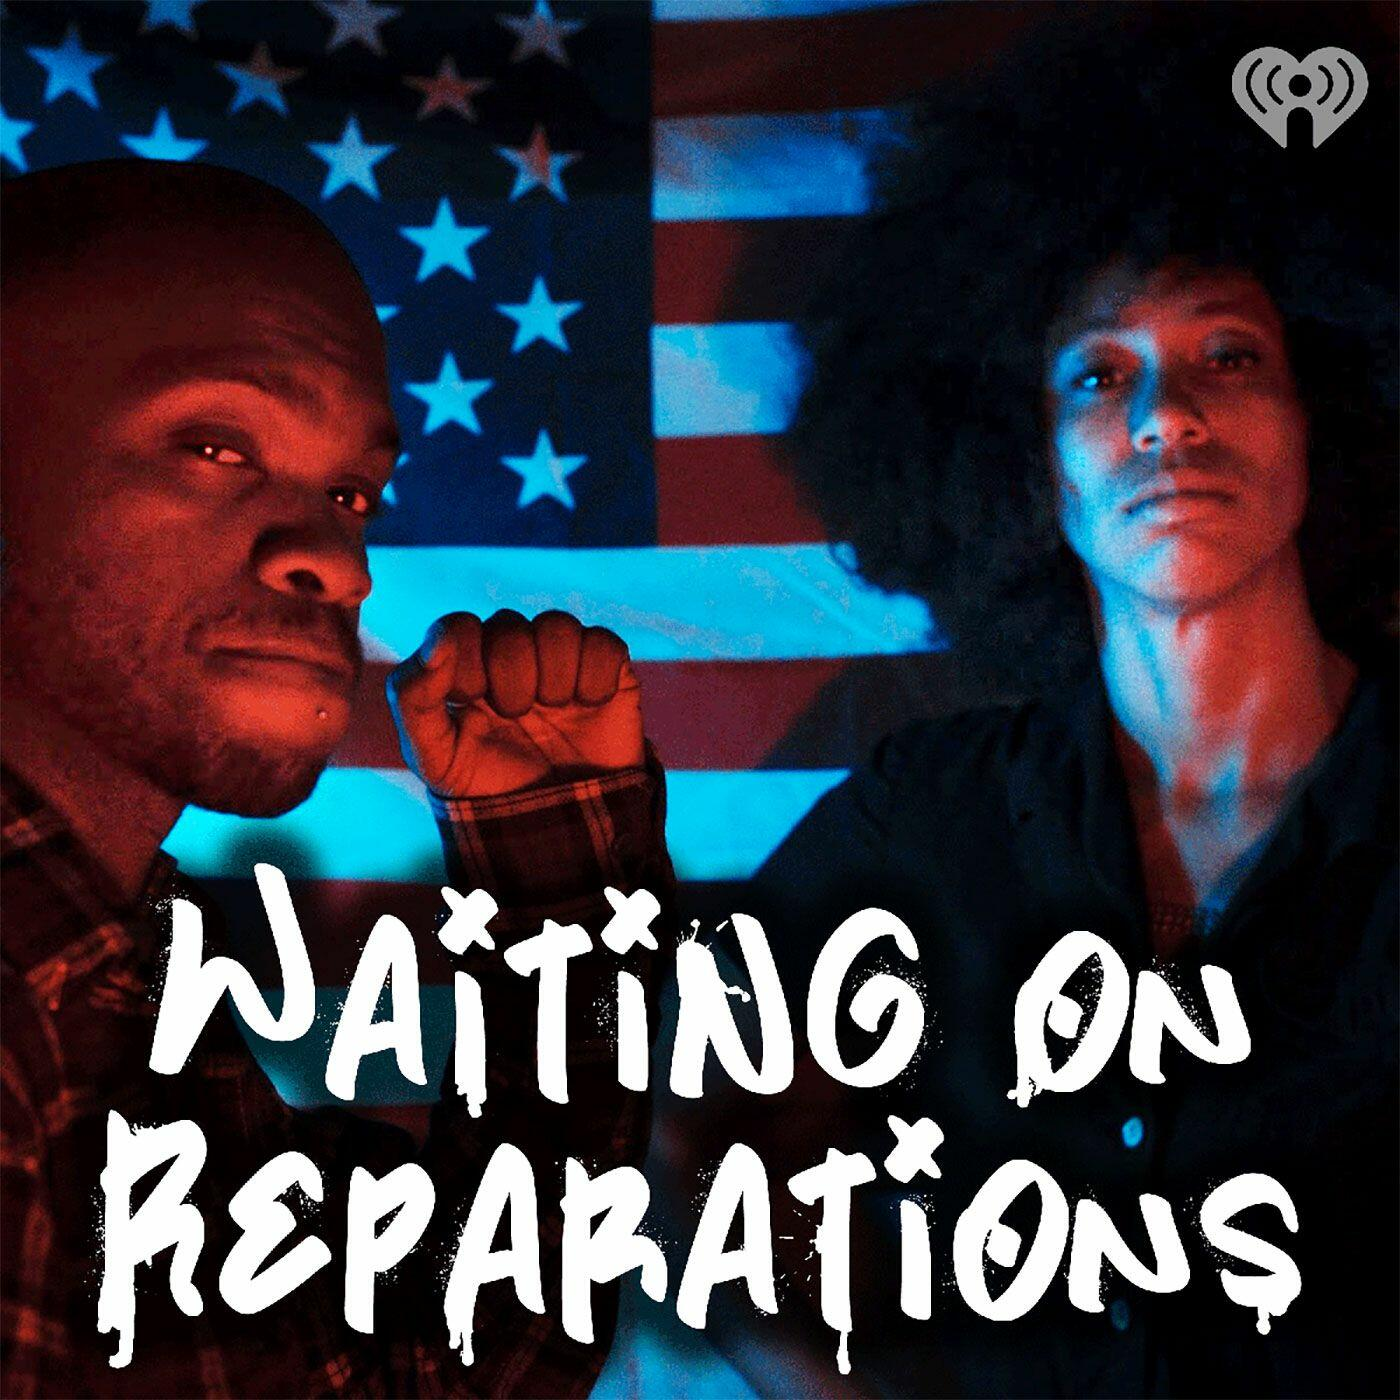 Waiting on Reparations